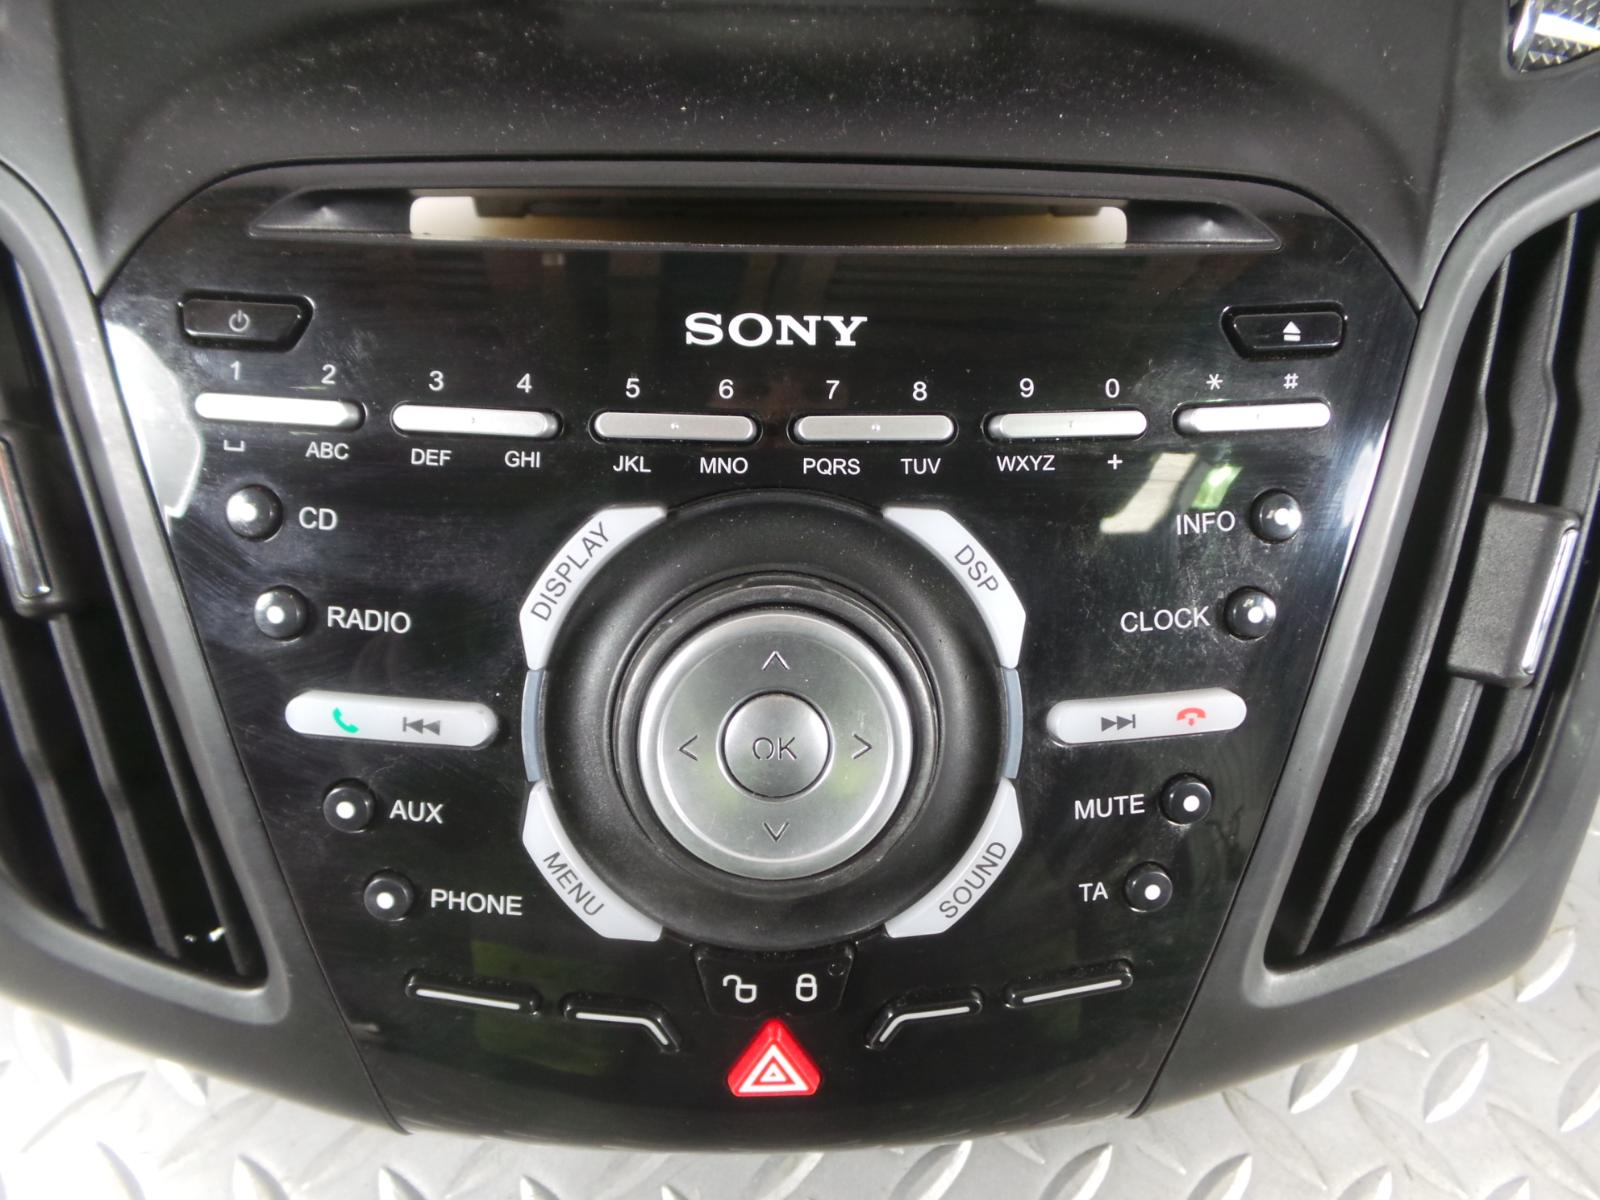 2012 ford focus st 2 sony dab ahu black cd player radio. Black Bedroom Furniture Sets. Home Design Ideas